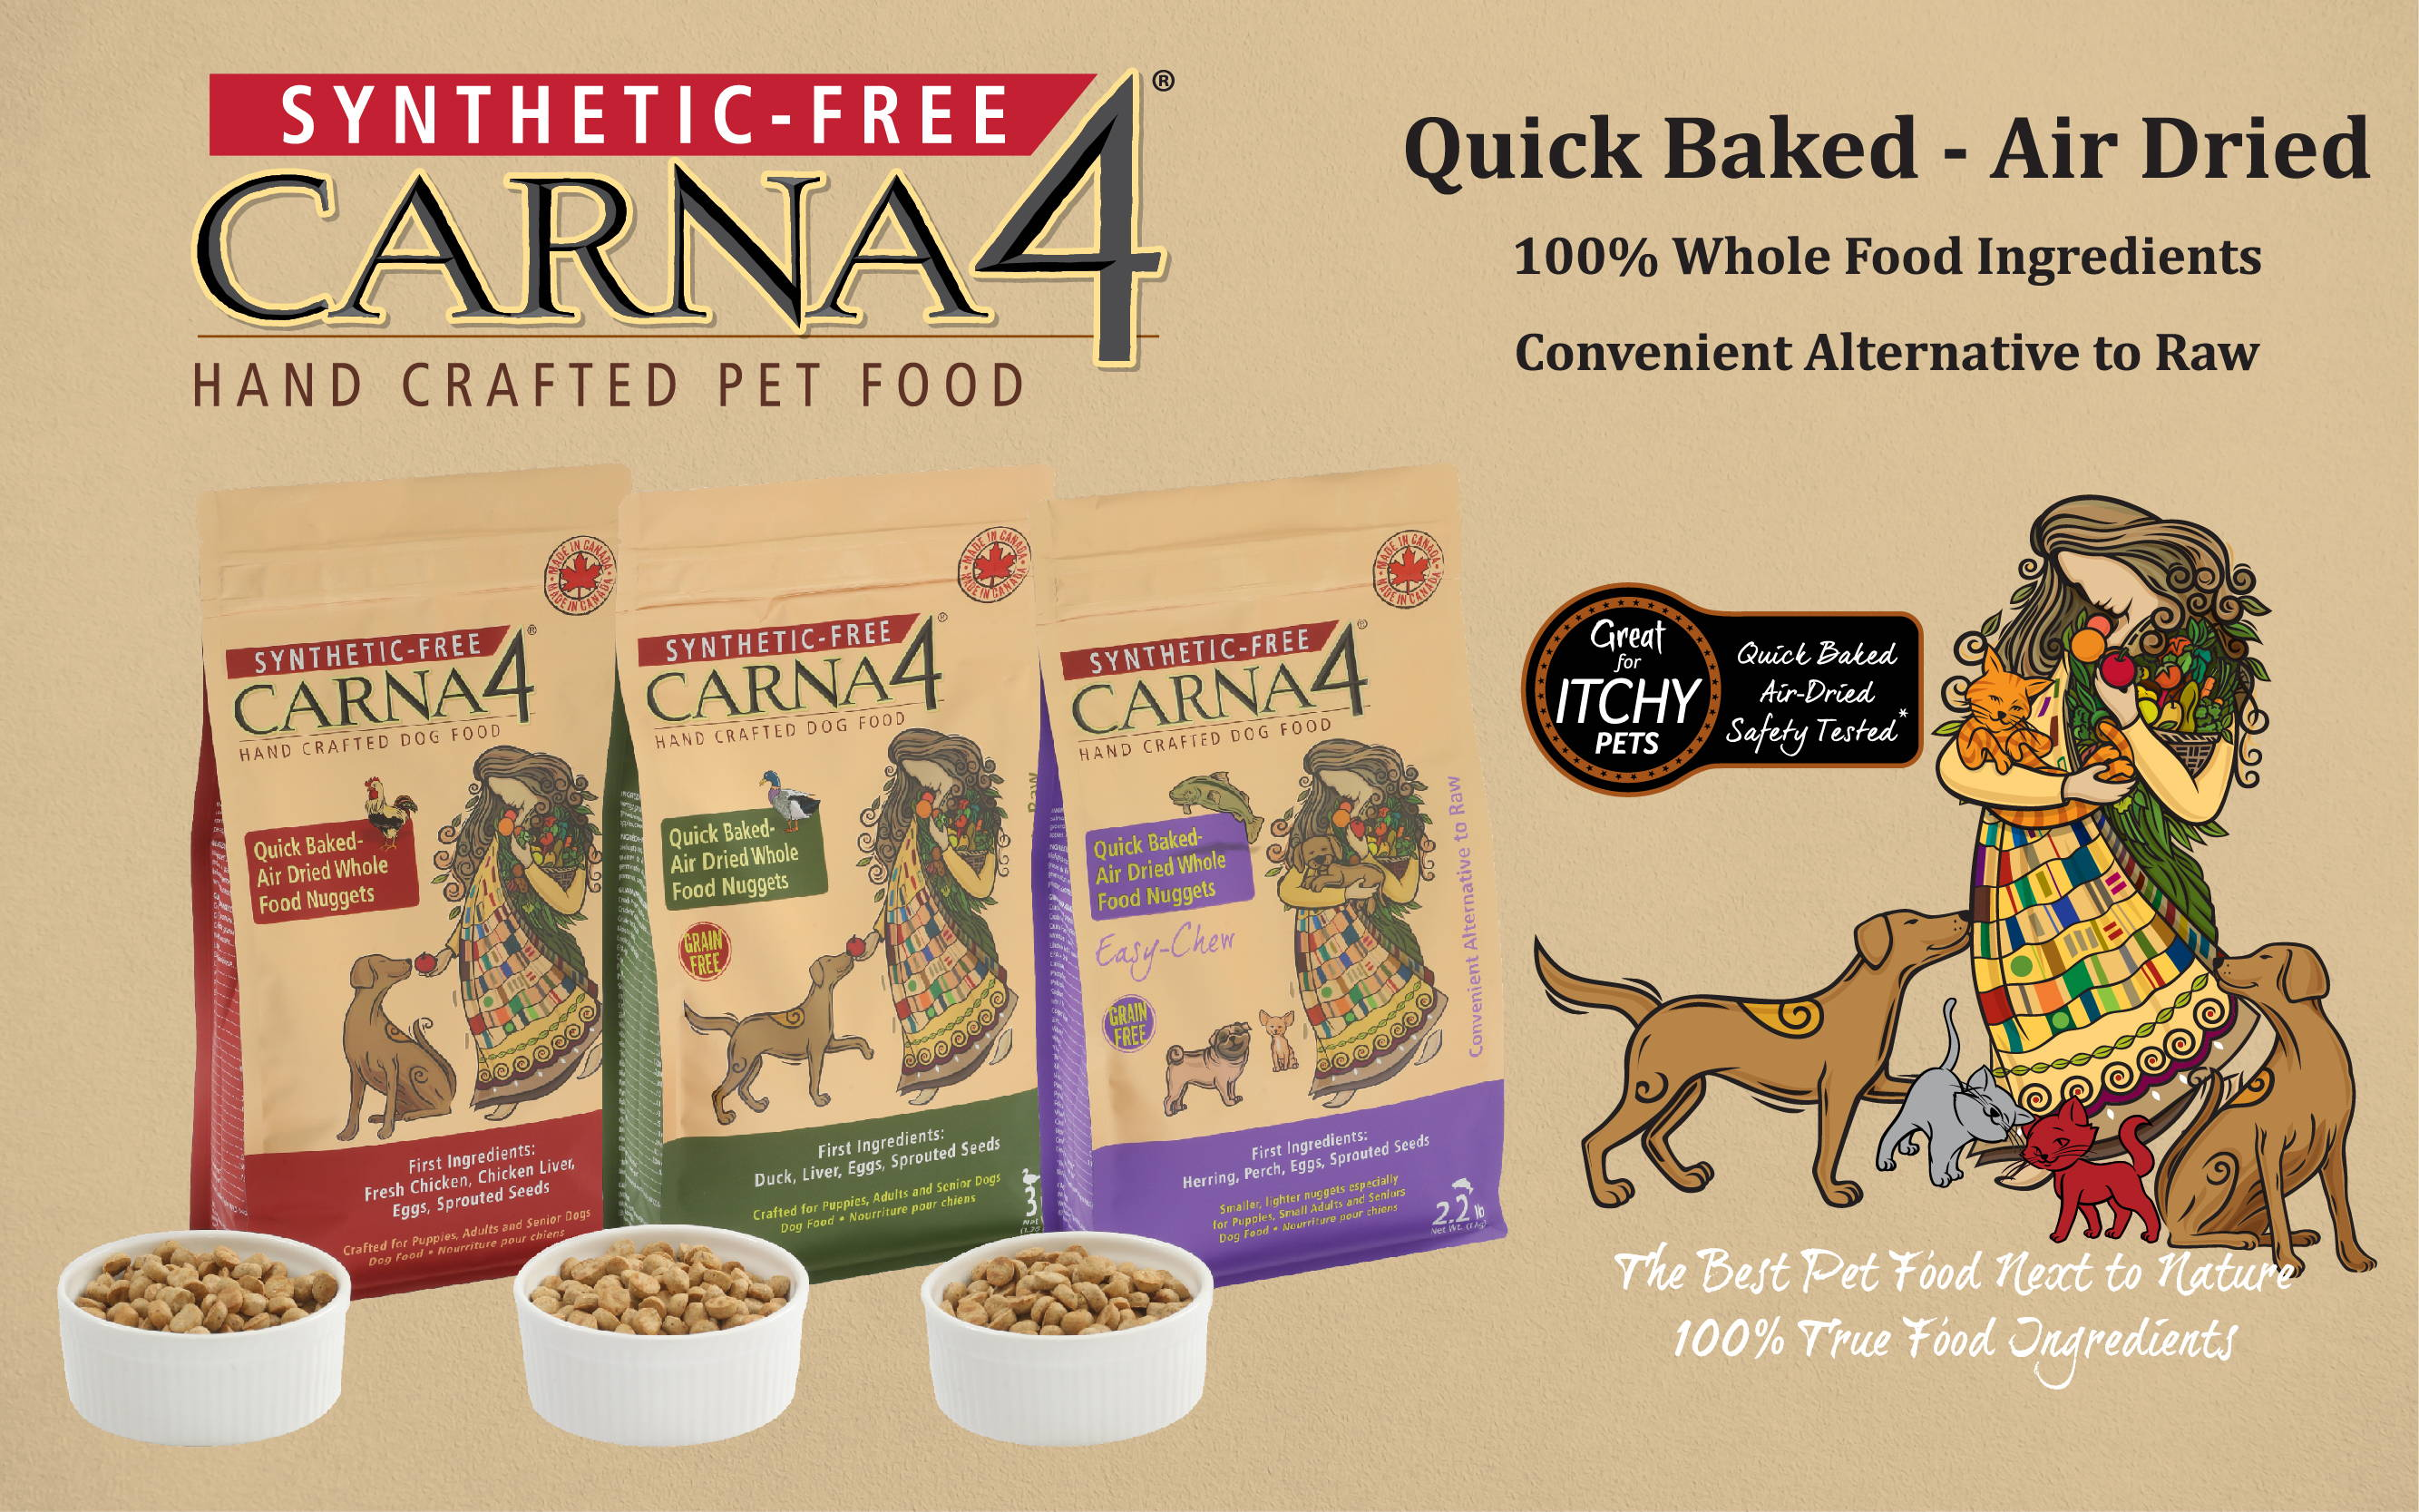 carna 4 quick baked air dried dog food banner